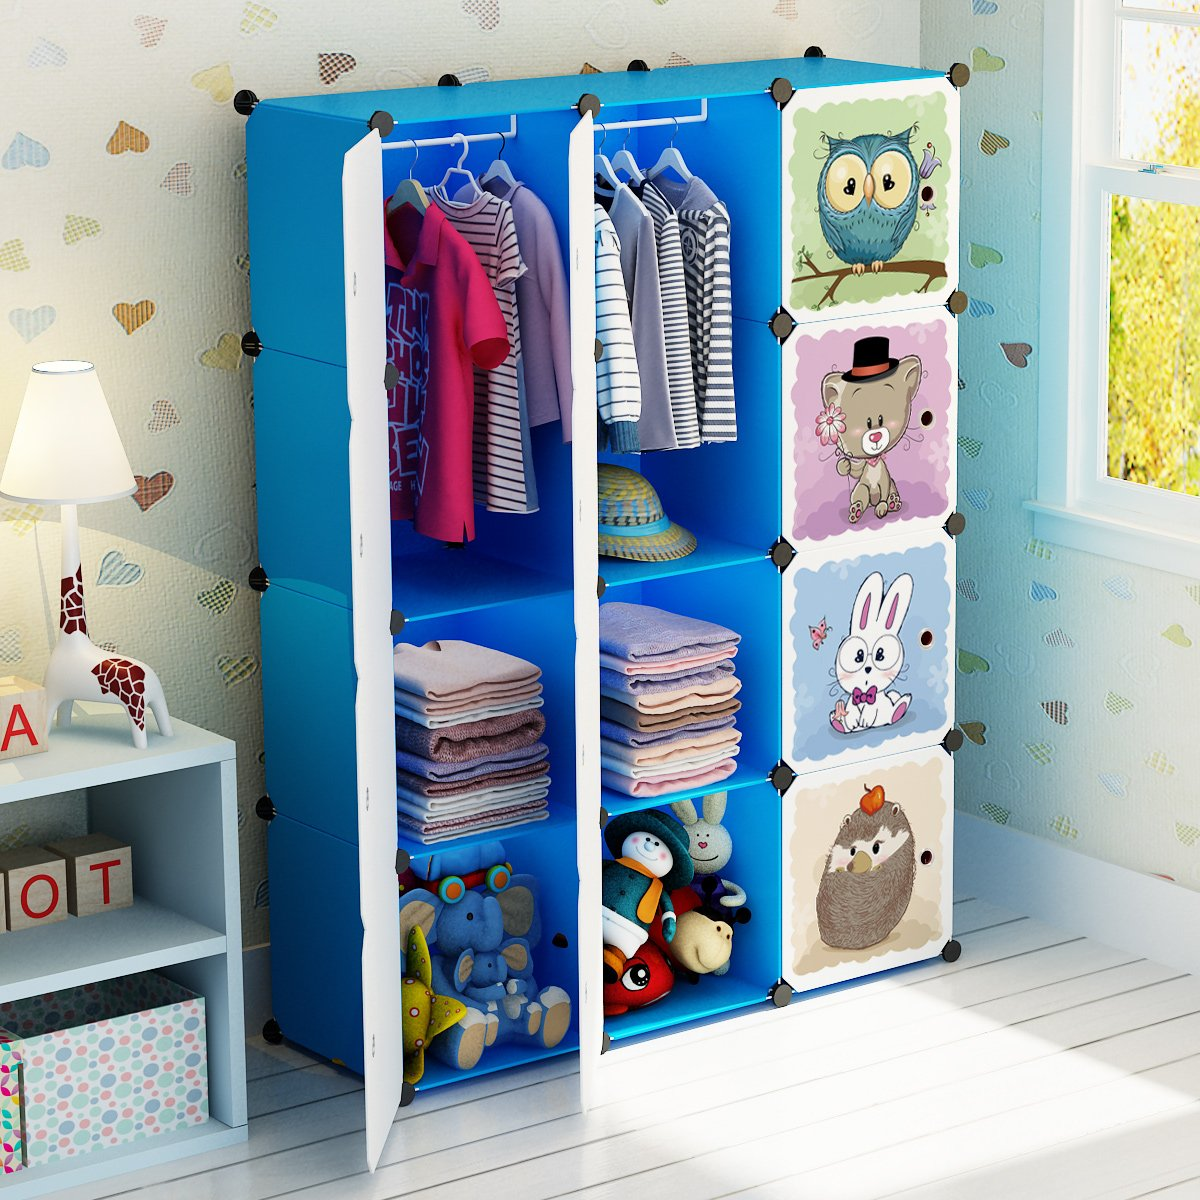 MAGINELS Portable Kid Organizers and Storage Organizer Clothes Wardrobe Cube Closet MultiFuncation Bedroom Armoire Children Dresser Rack Blue Forest Animal 6 Cube &1 Hanging Section